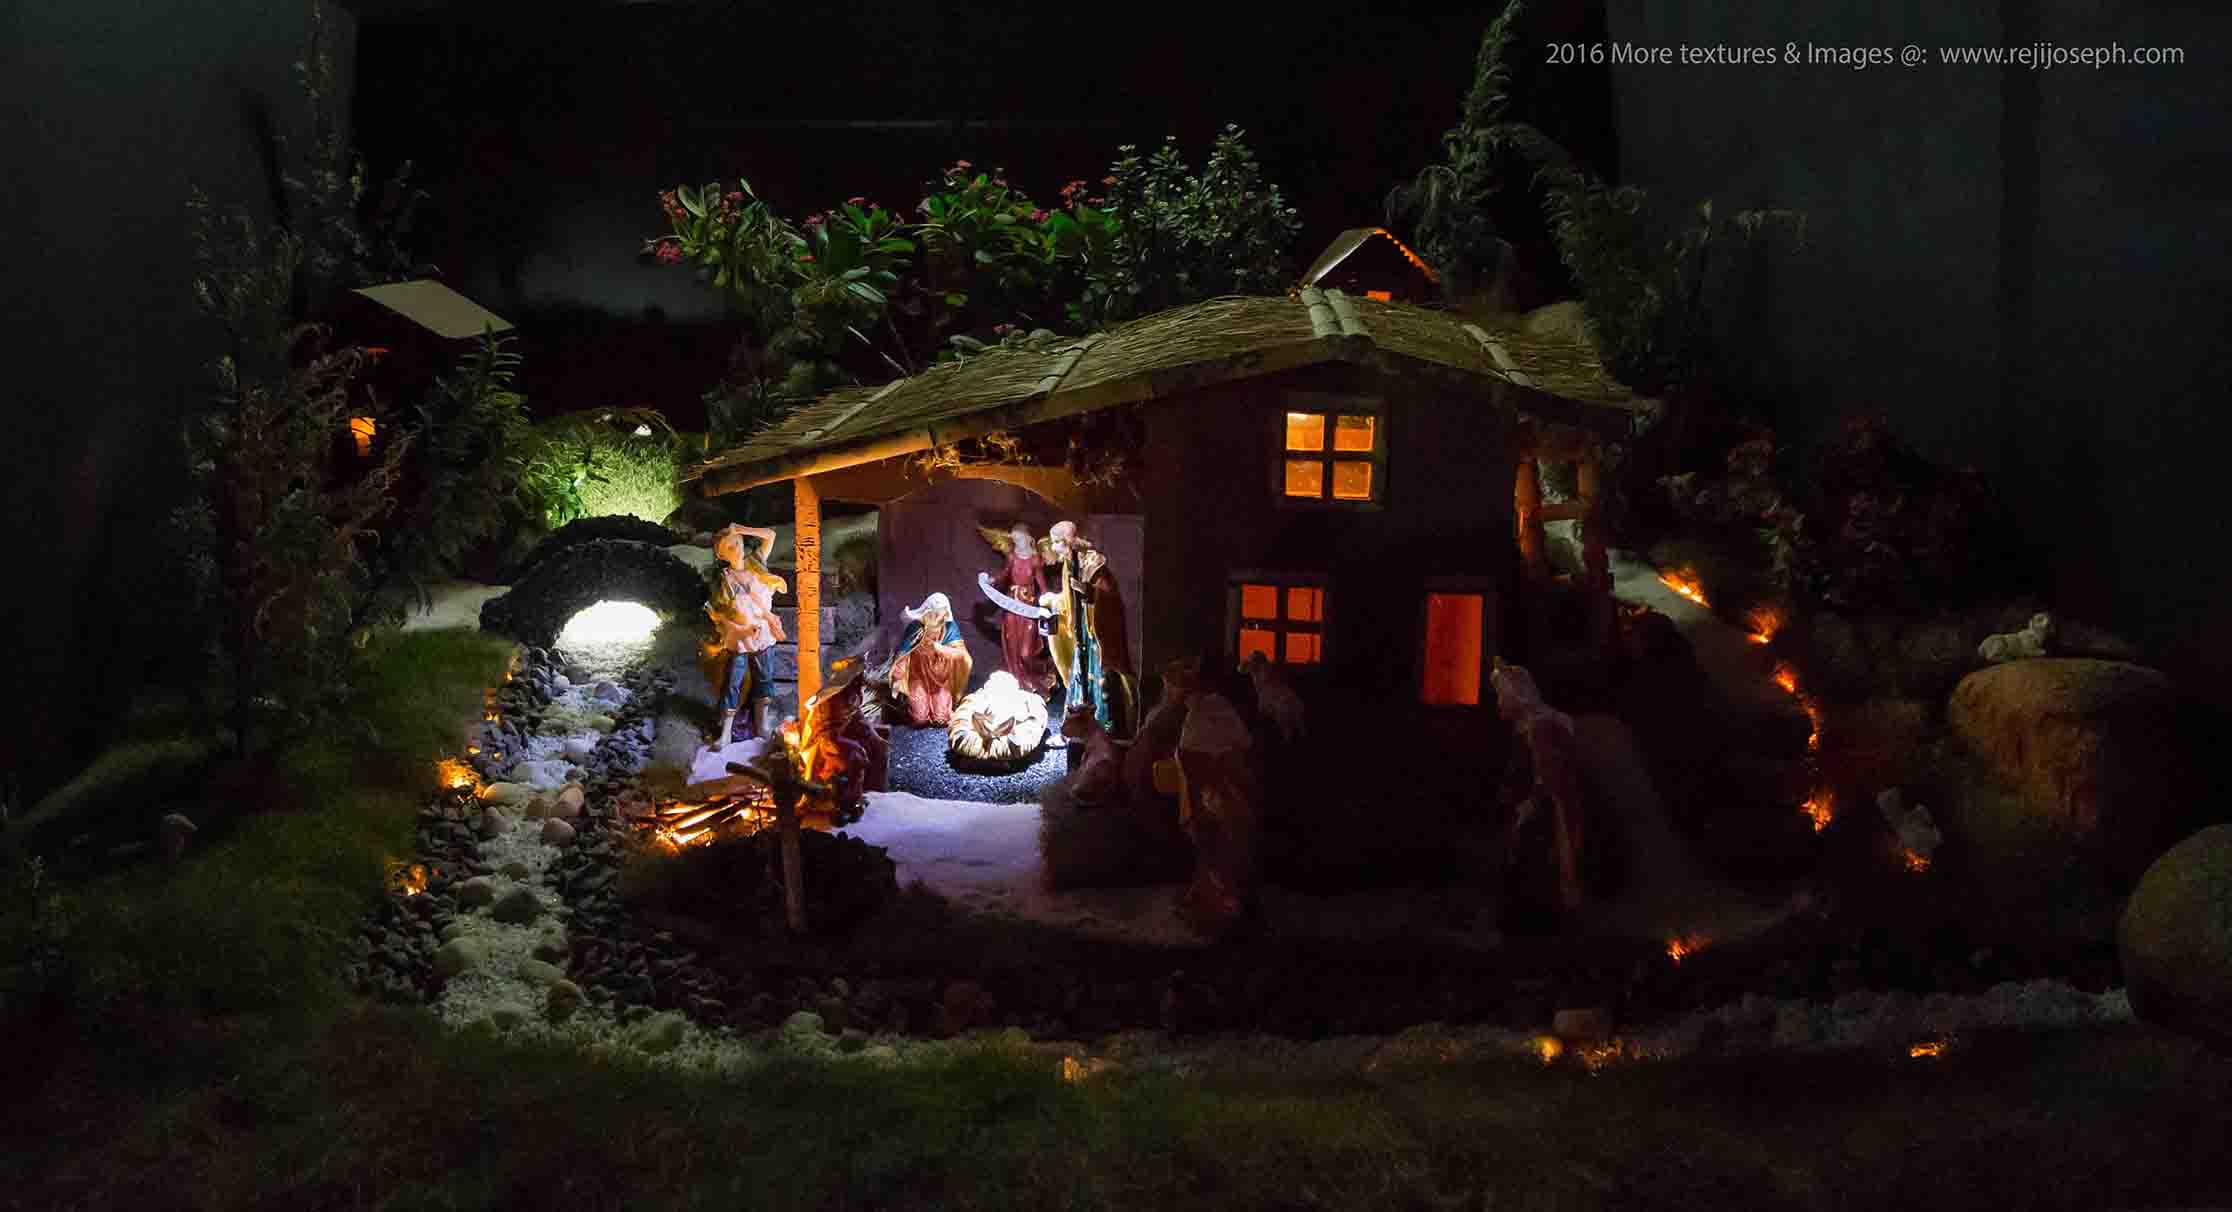 Christmas crib Pulkoodu St. George Forane Church Edappally 00007